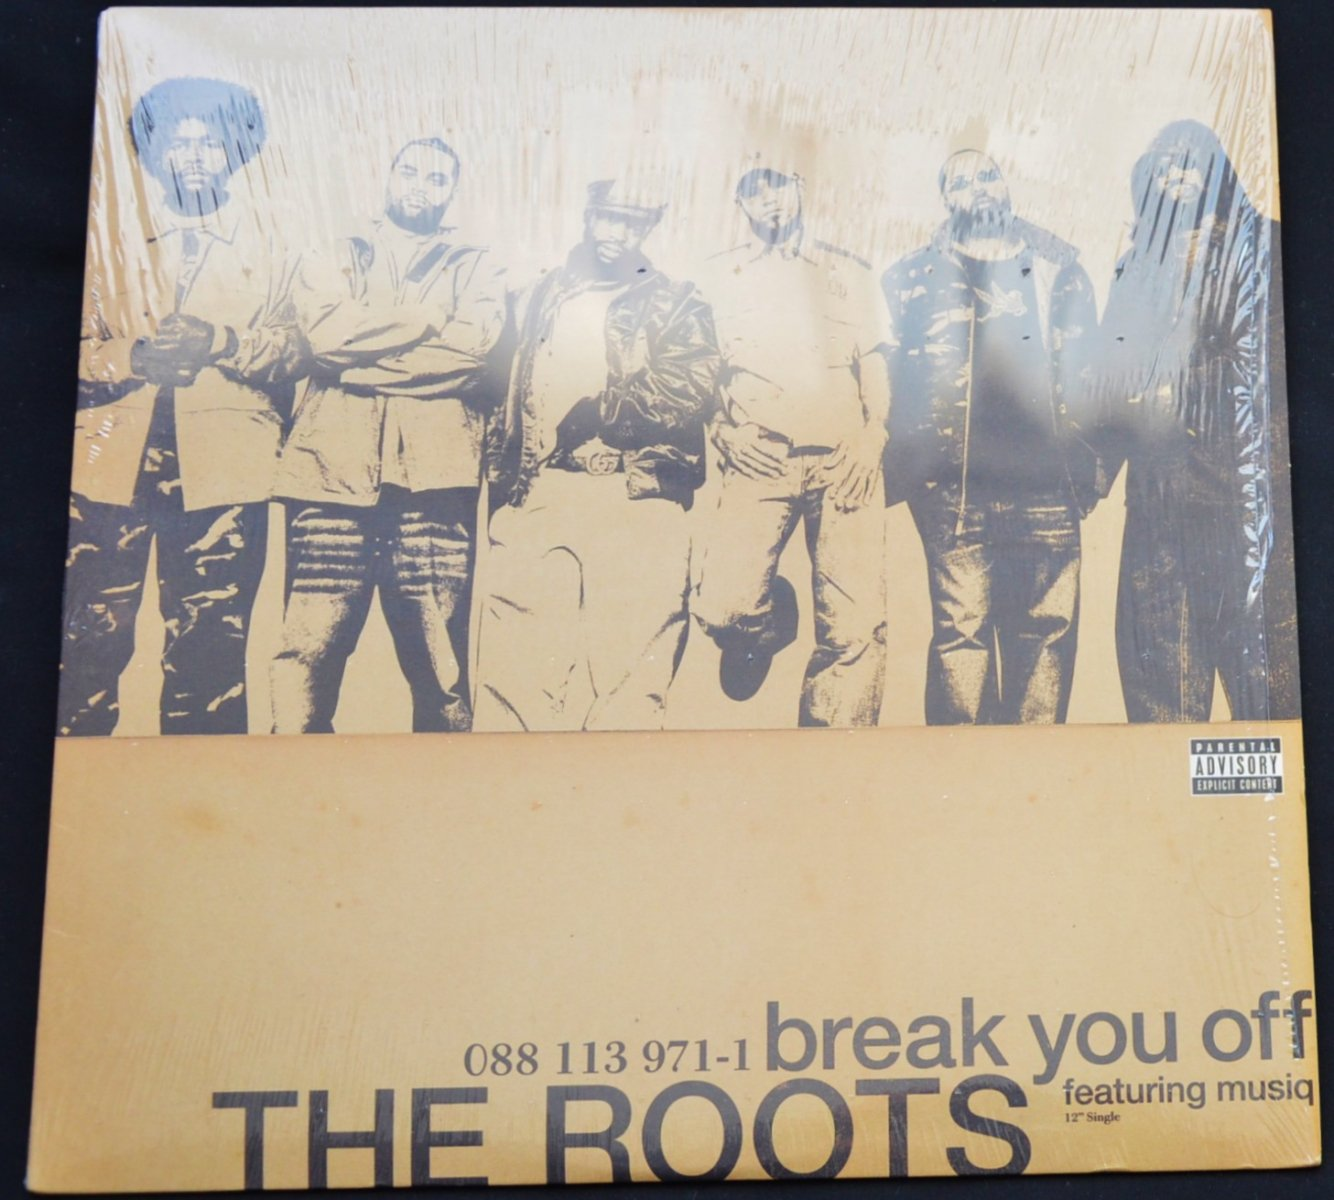 THE ROOTS FEATURING MUSIQ / BREAK YOU OFF (12